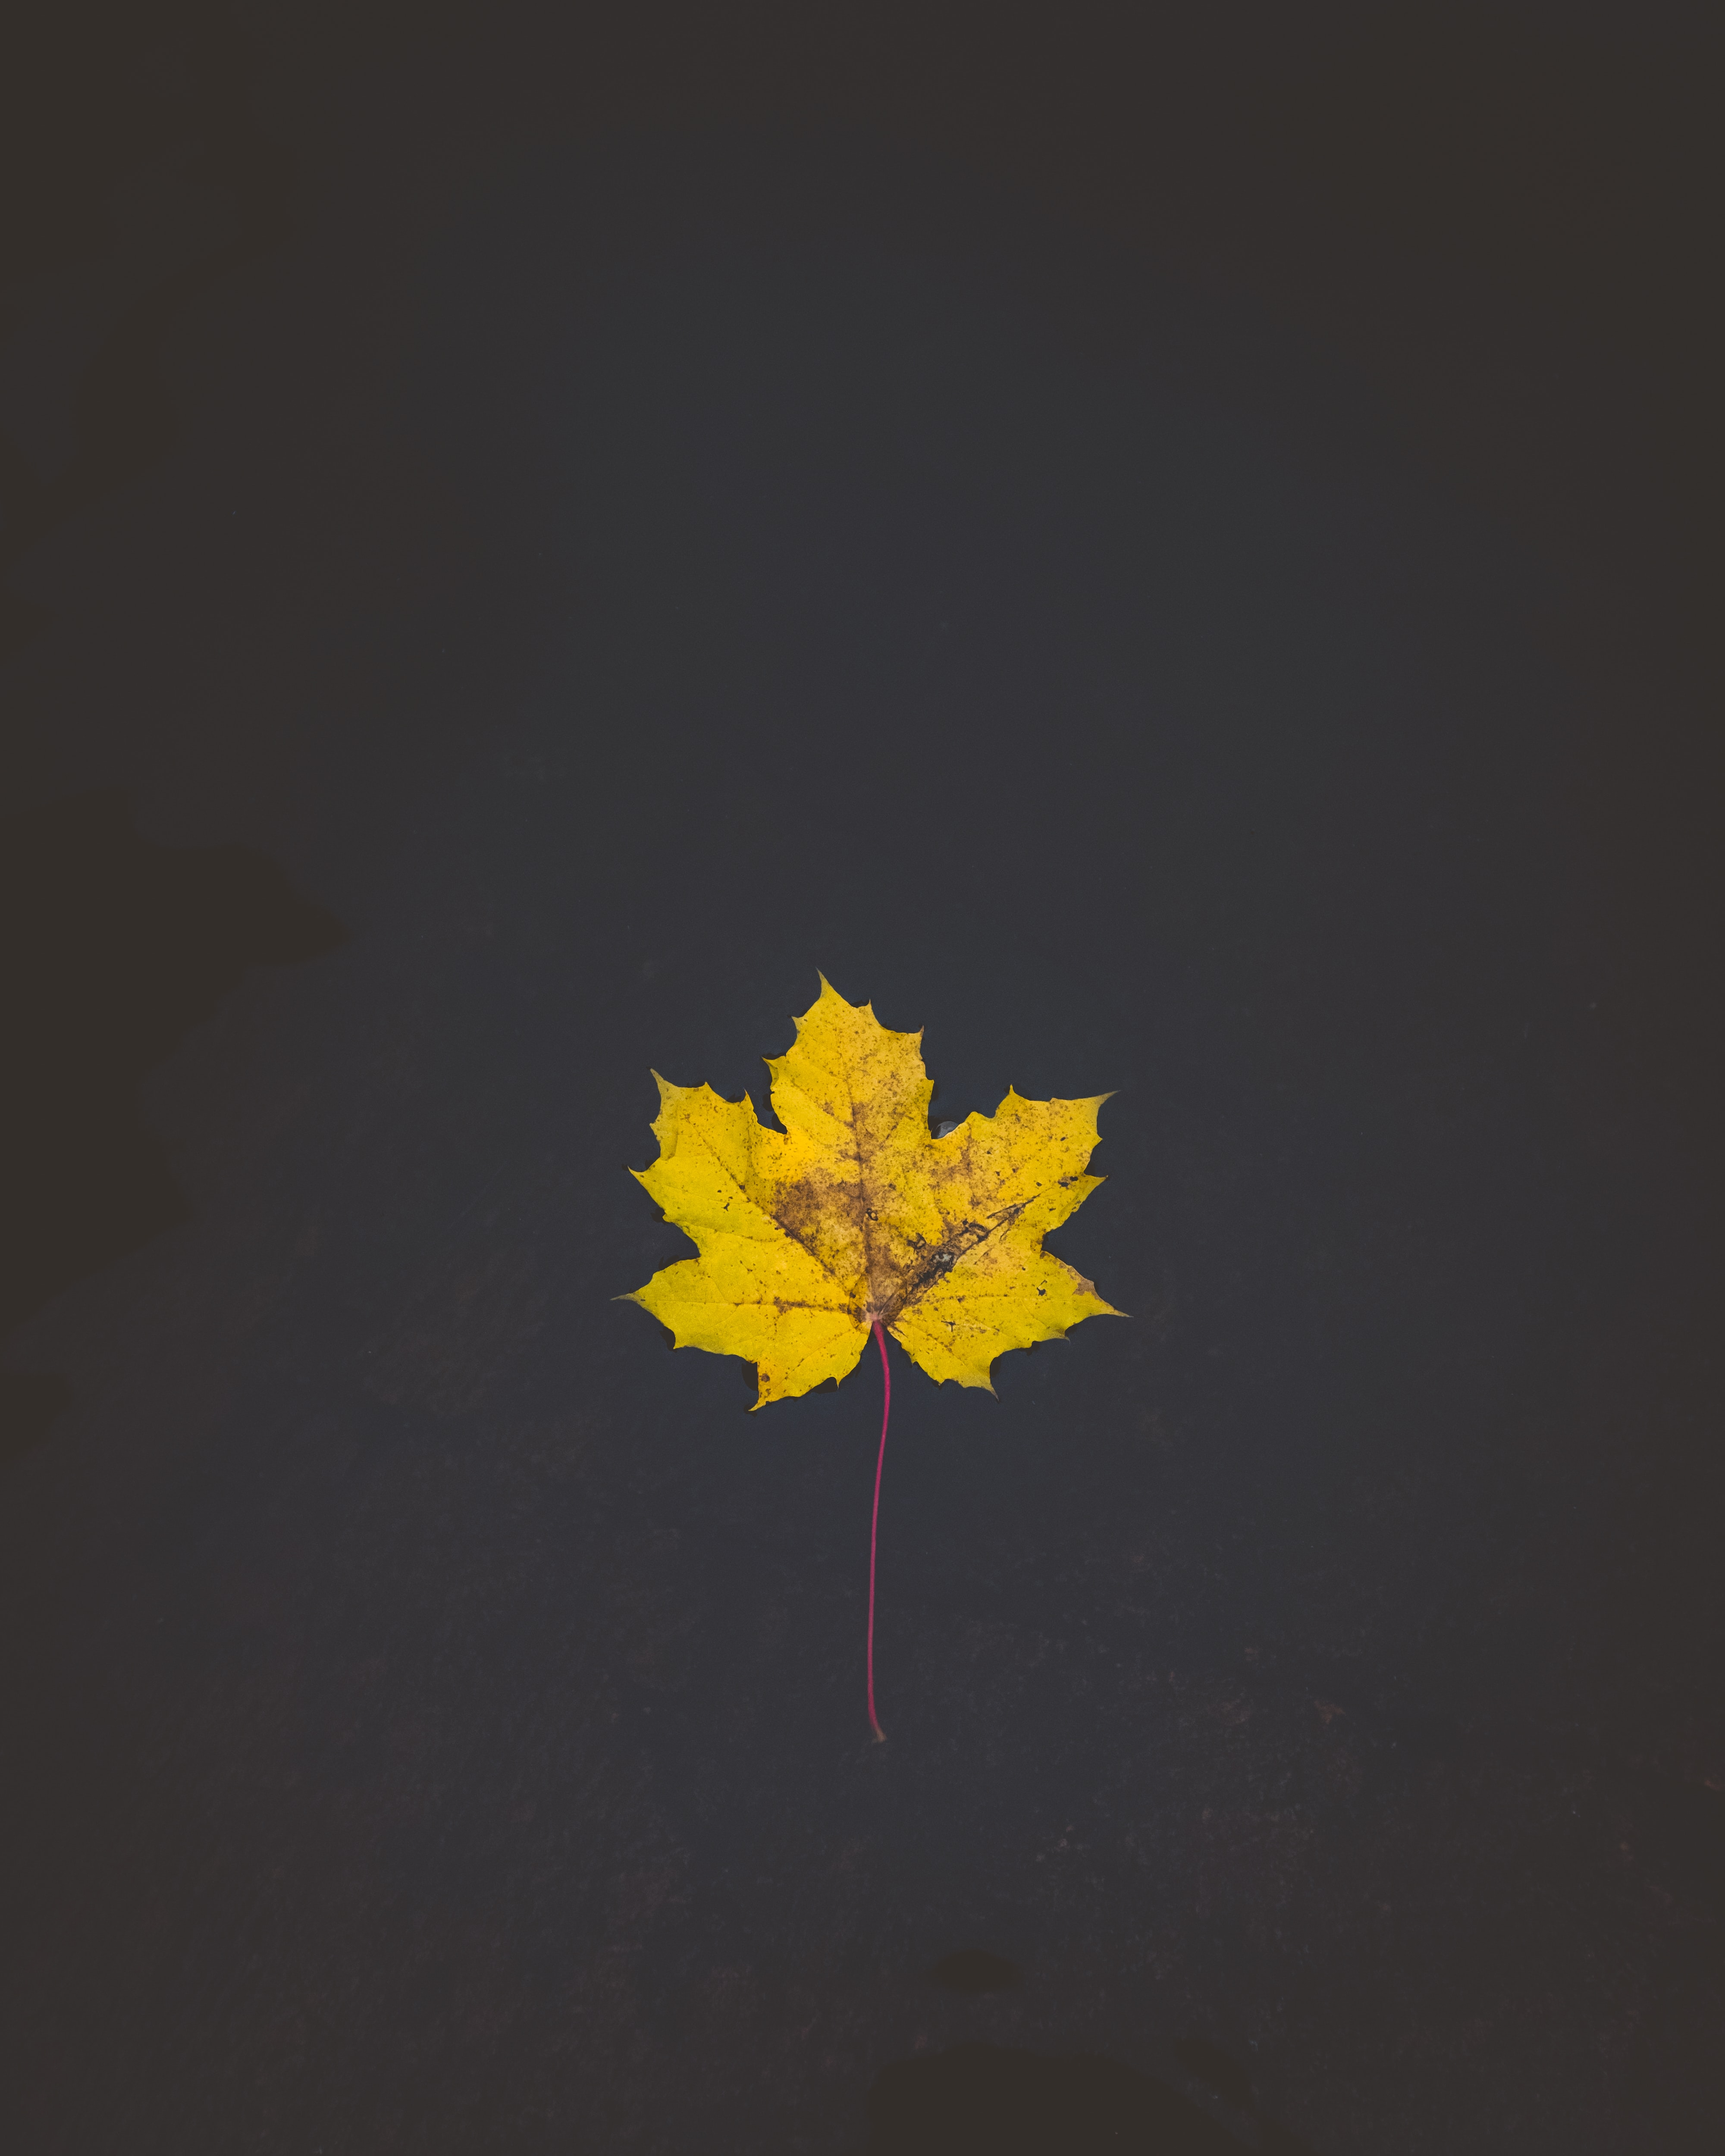 yellow maple leaf on body of water